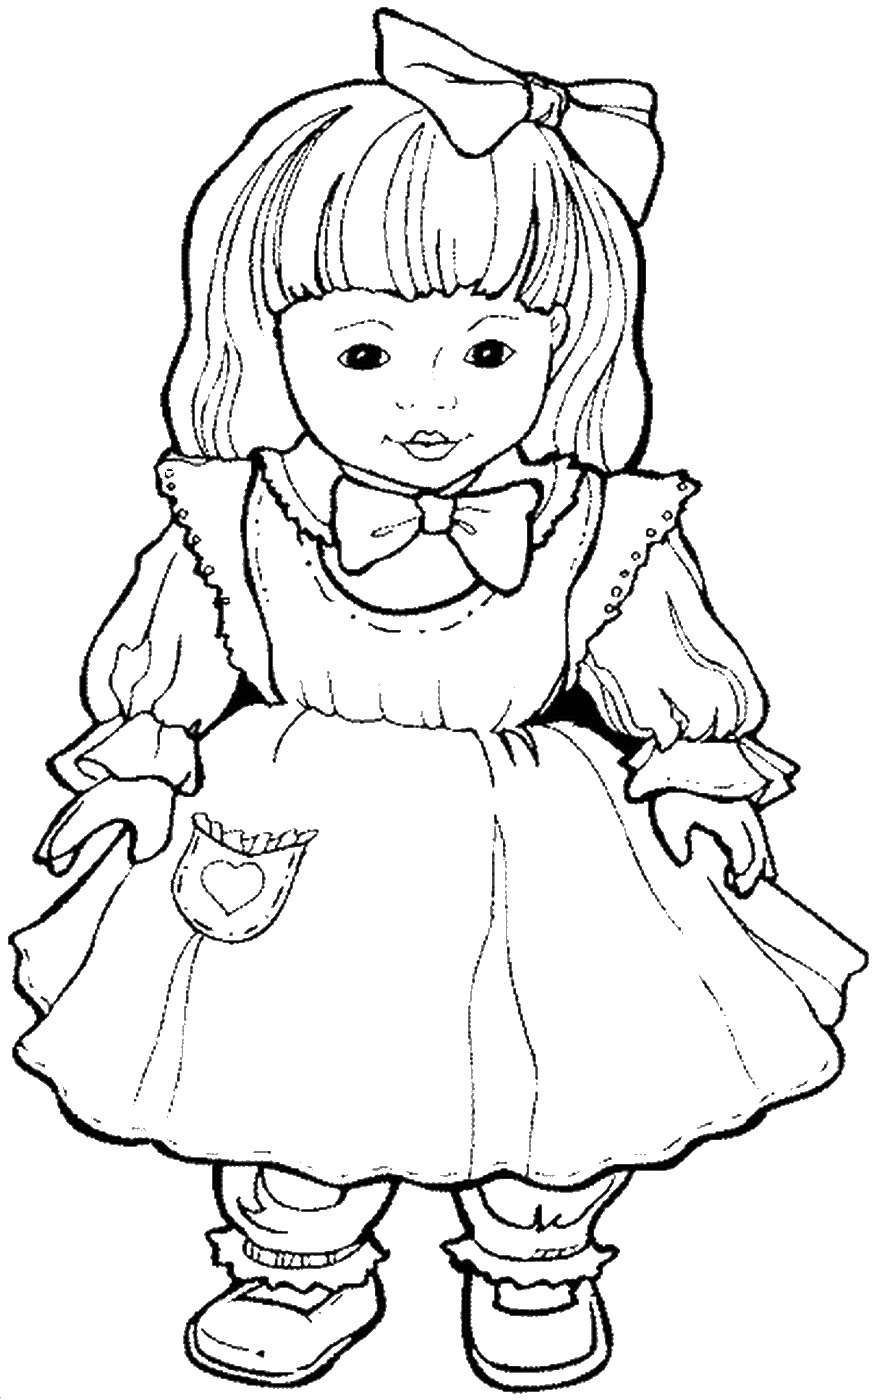 colouring picture of girl little girl coloring pages getcoloringpagescom picture girl of colouring